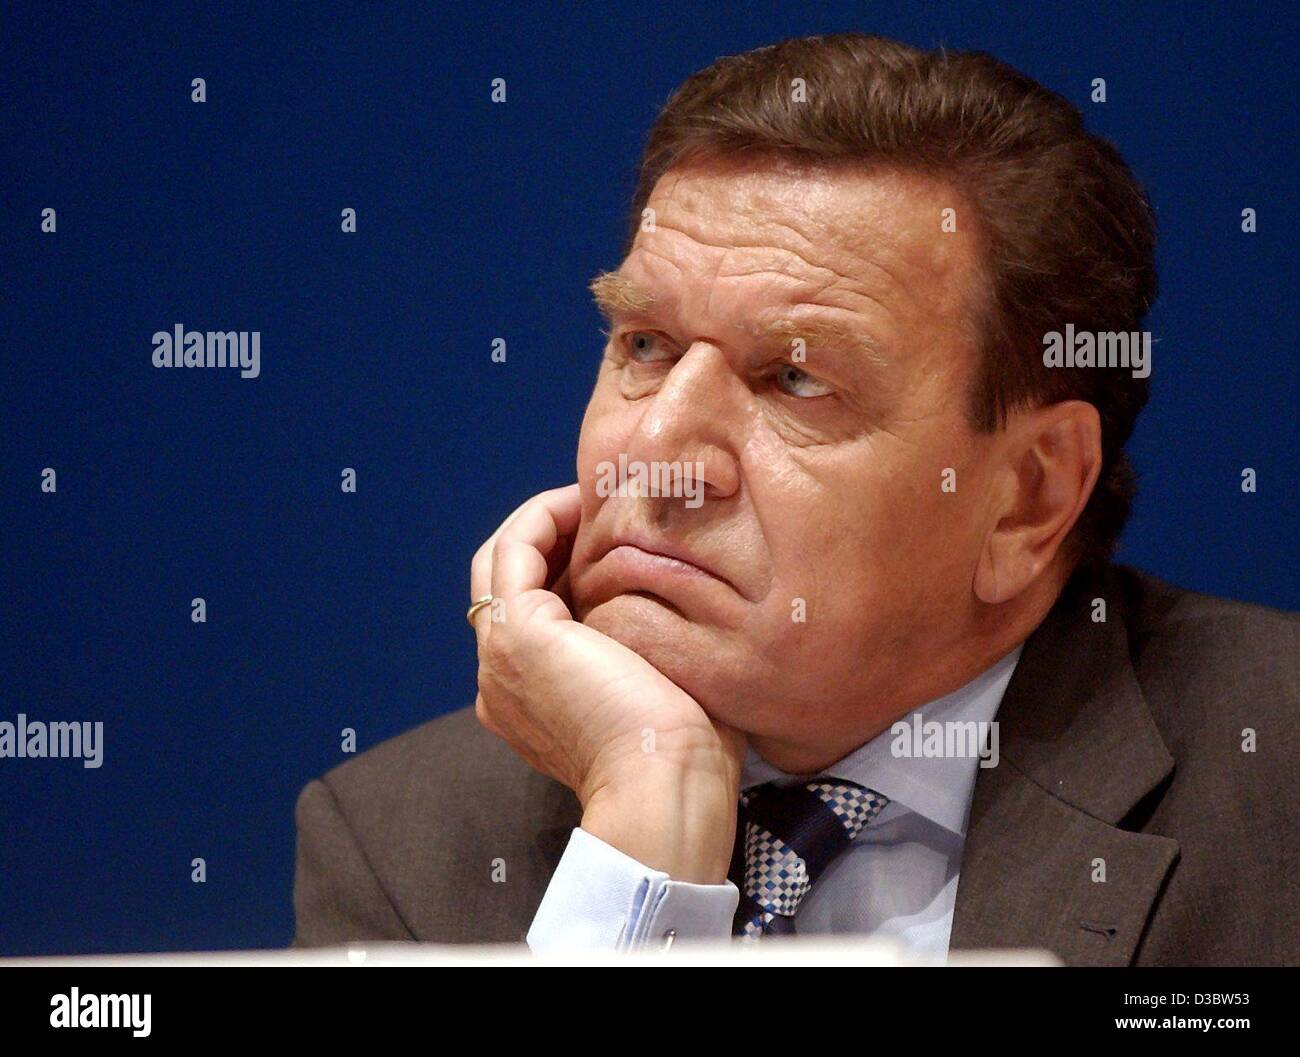 (dpa) - German Chancellor Gerhard Schroeder listens thoughtfully to a speech during a congress in Halle, Germany, - Stock Image